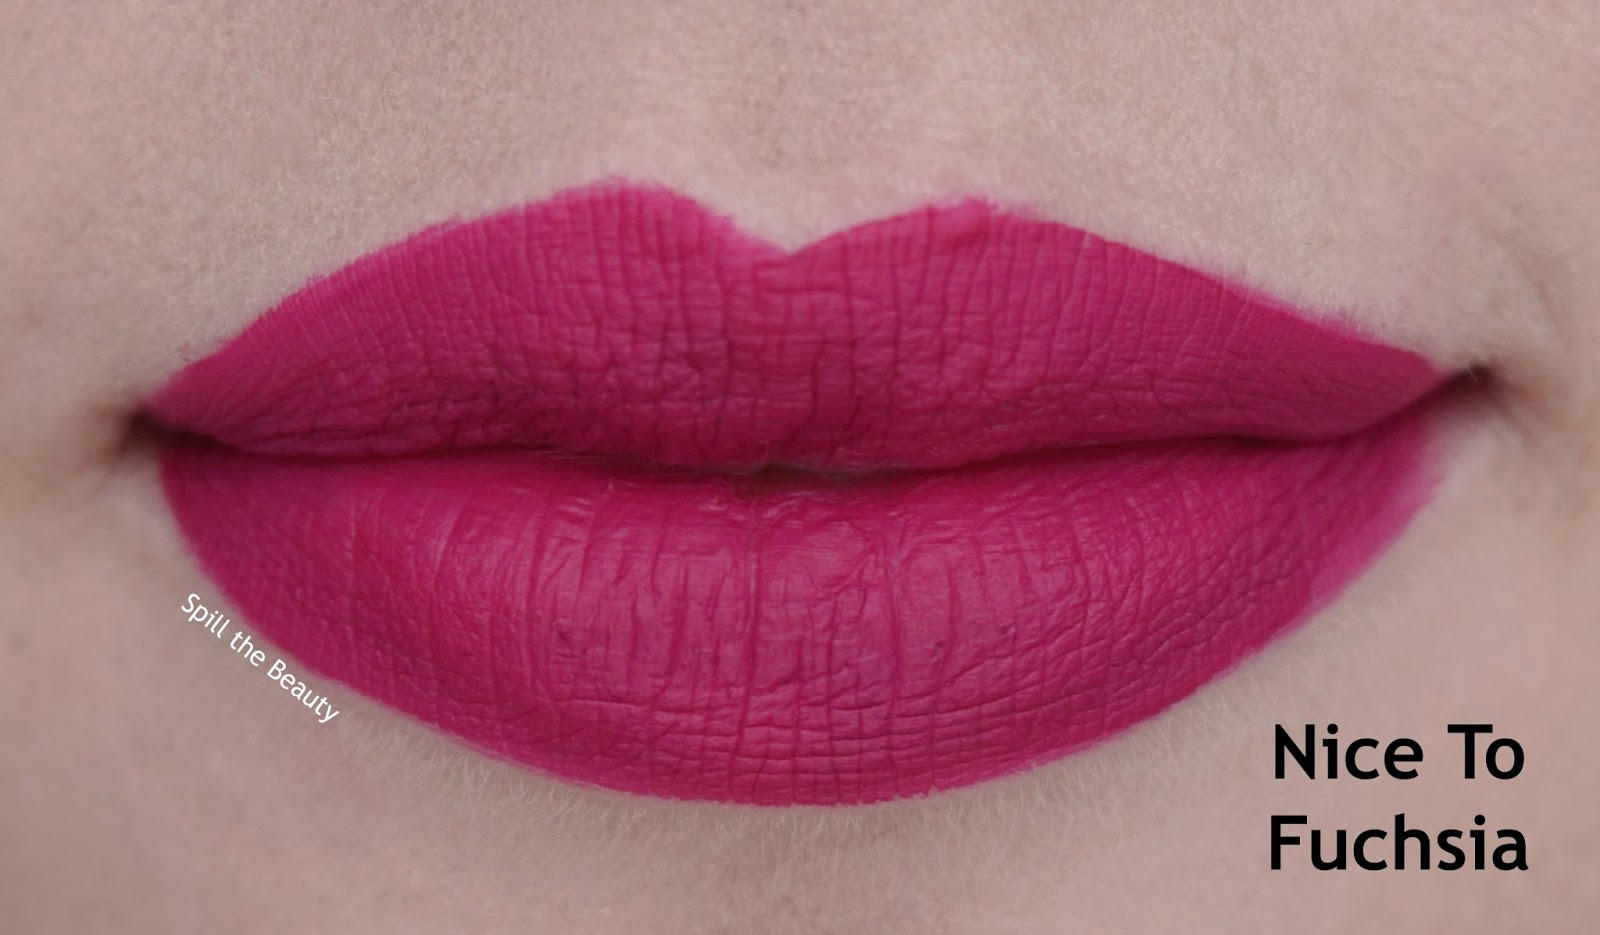 wet n wild liquid catsuit matte lipstick review swatches look nice to fuchsia 927b lips